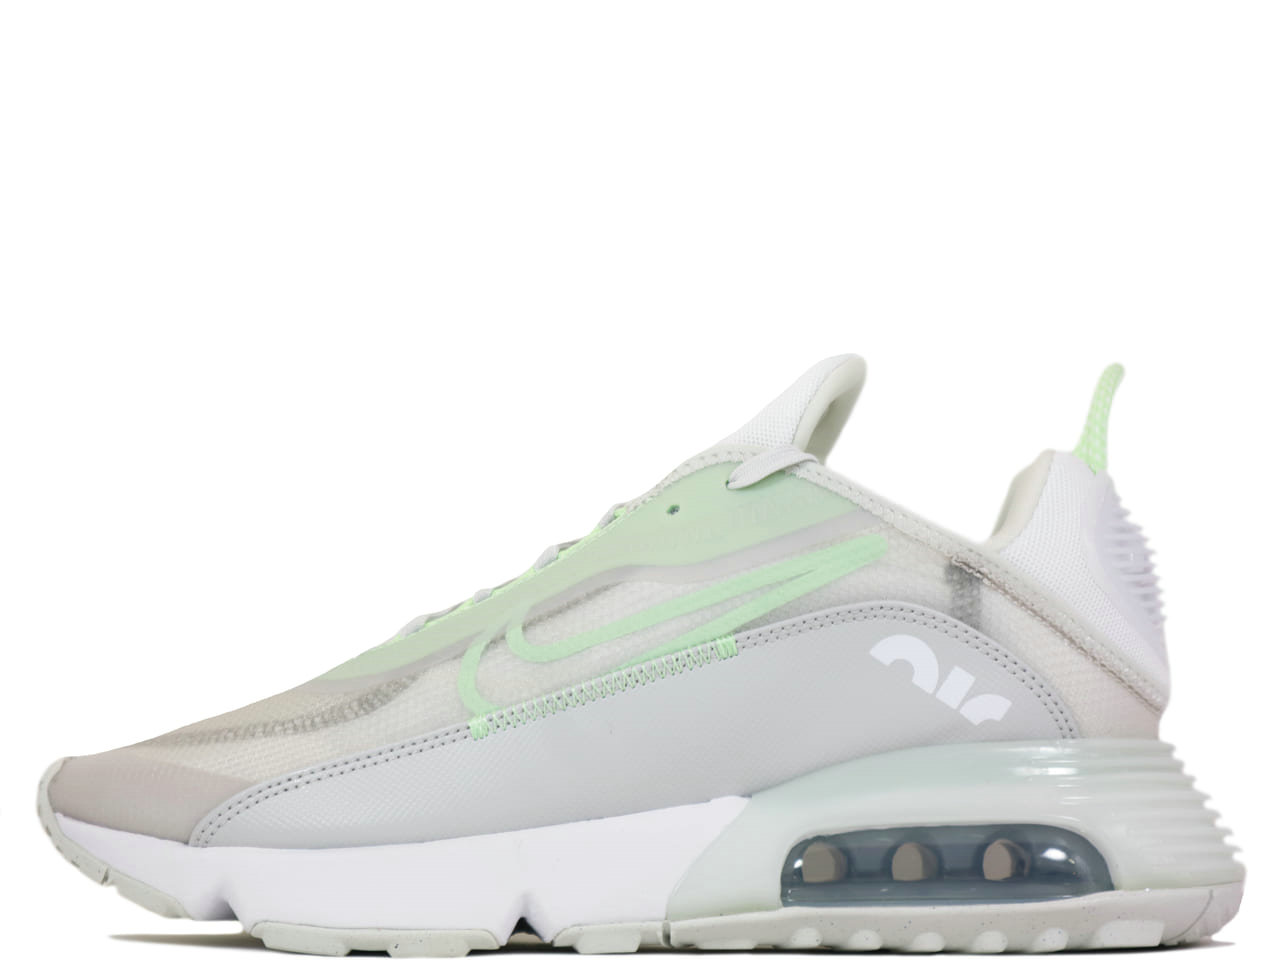 2021 Where To Buy Cheap Nike Air Max 2090 Vast Grey Vapor Green-Flat Pewter-White CT1091-001 On VaporMaxRunning